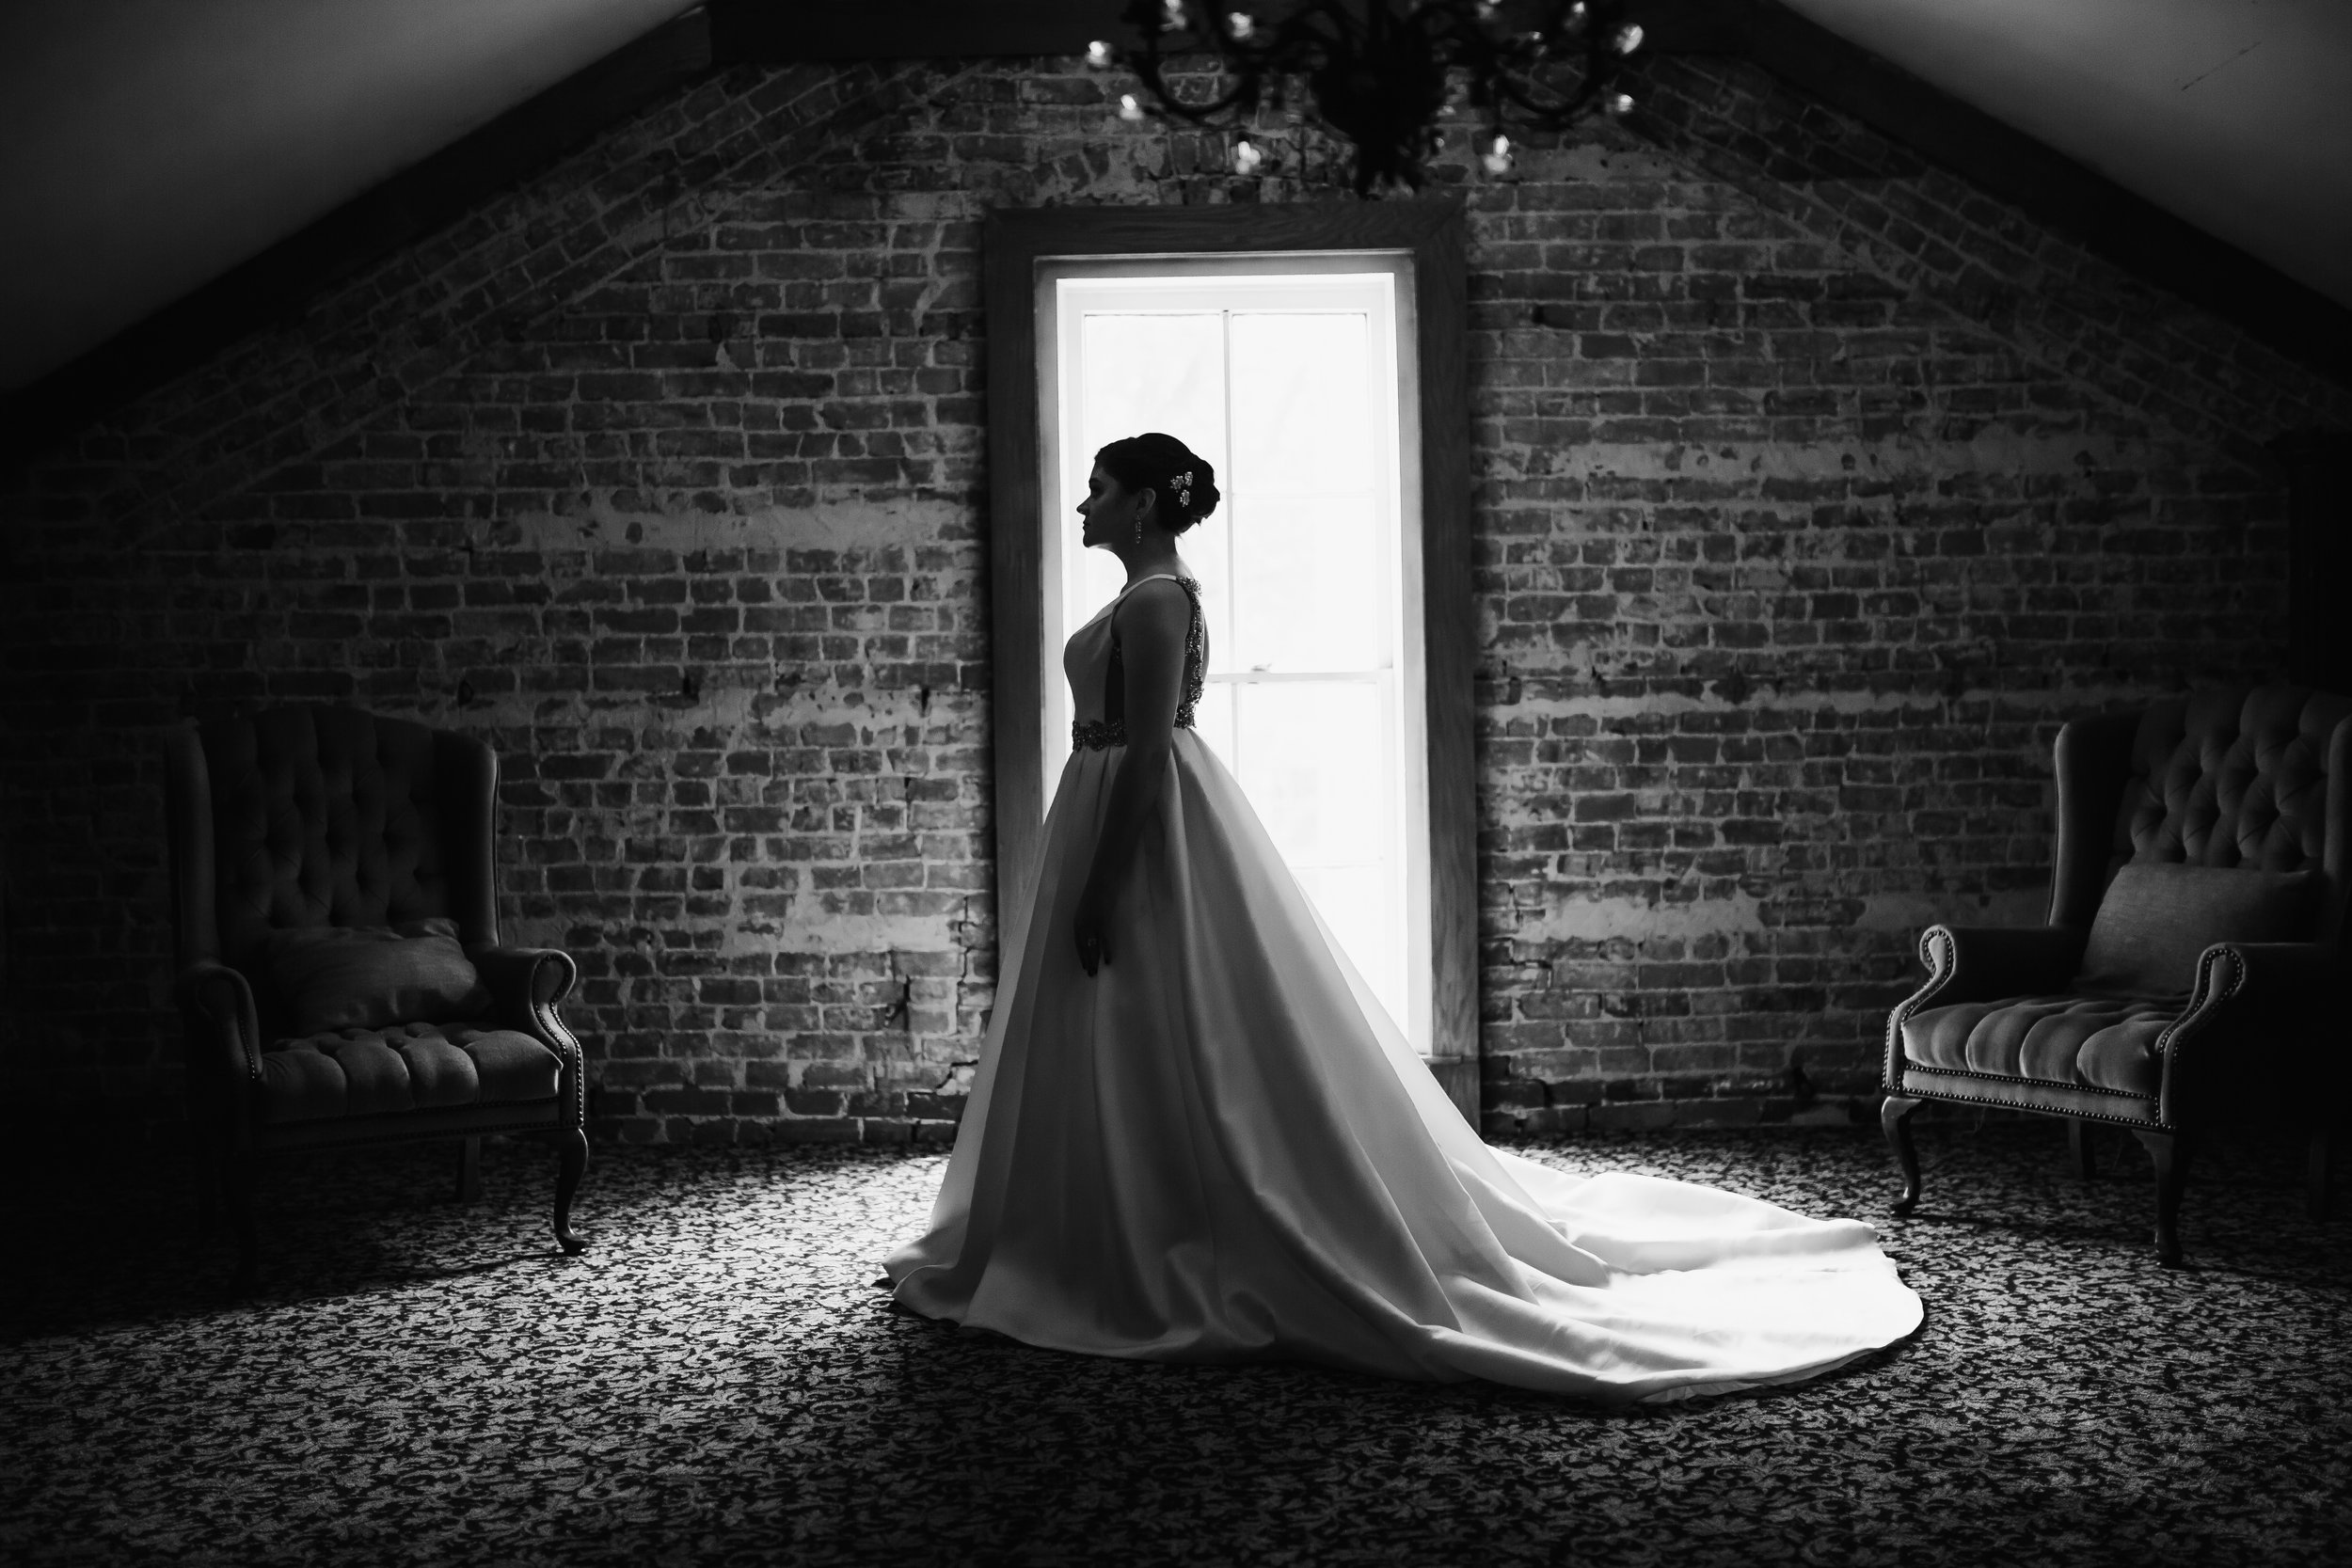 cassie-cook-photography-memphis-wedding-photographer-woodruff-fontaine-house-wedding-venue-hunley-wedding-107.jpg